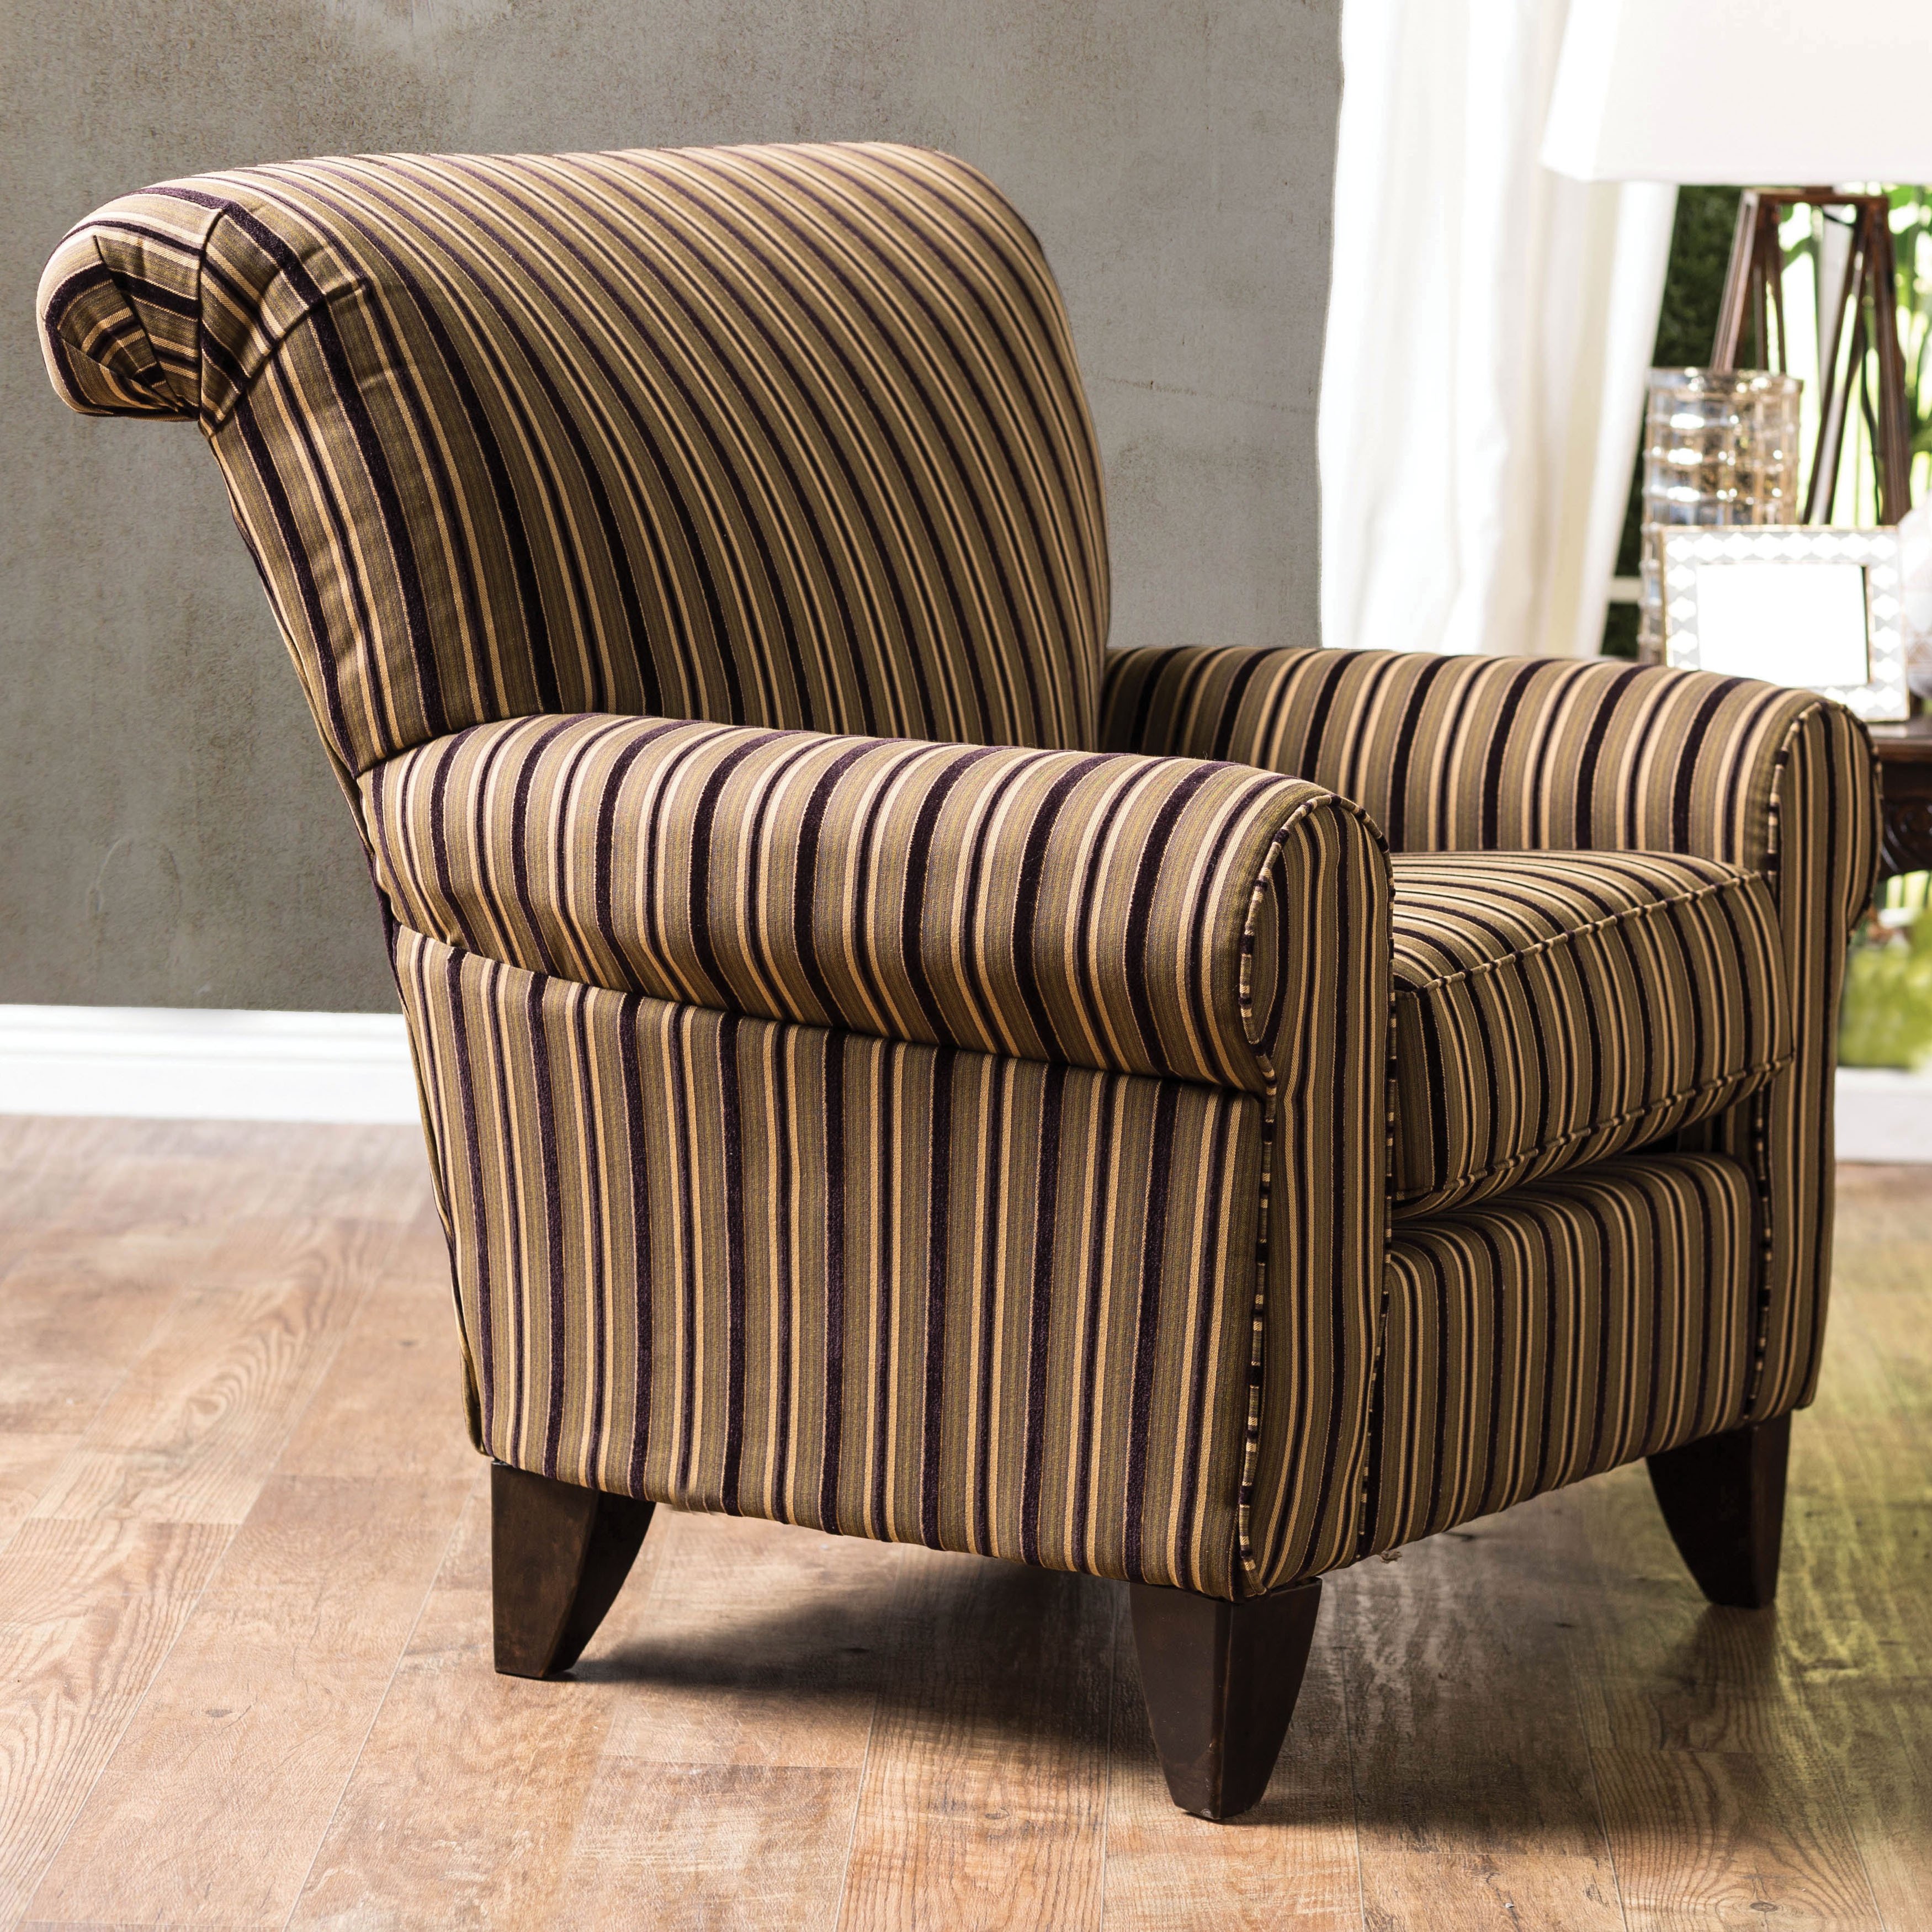 Genial Furniture Of America Shellie Transitional Striped Club Chair   Free  Shipping Today   Overstock   18087254